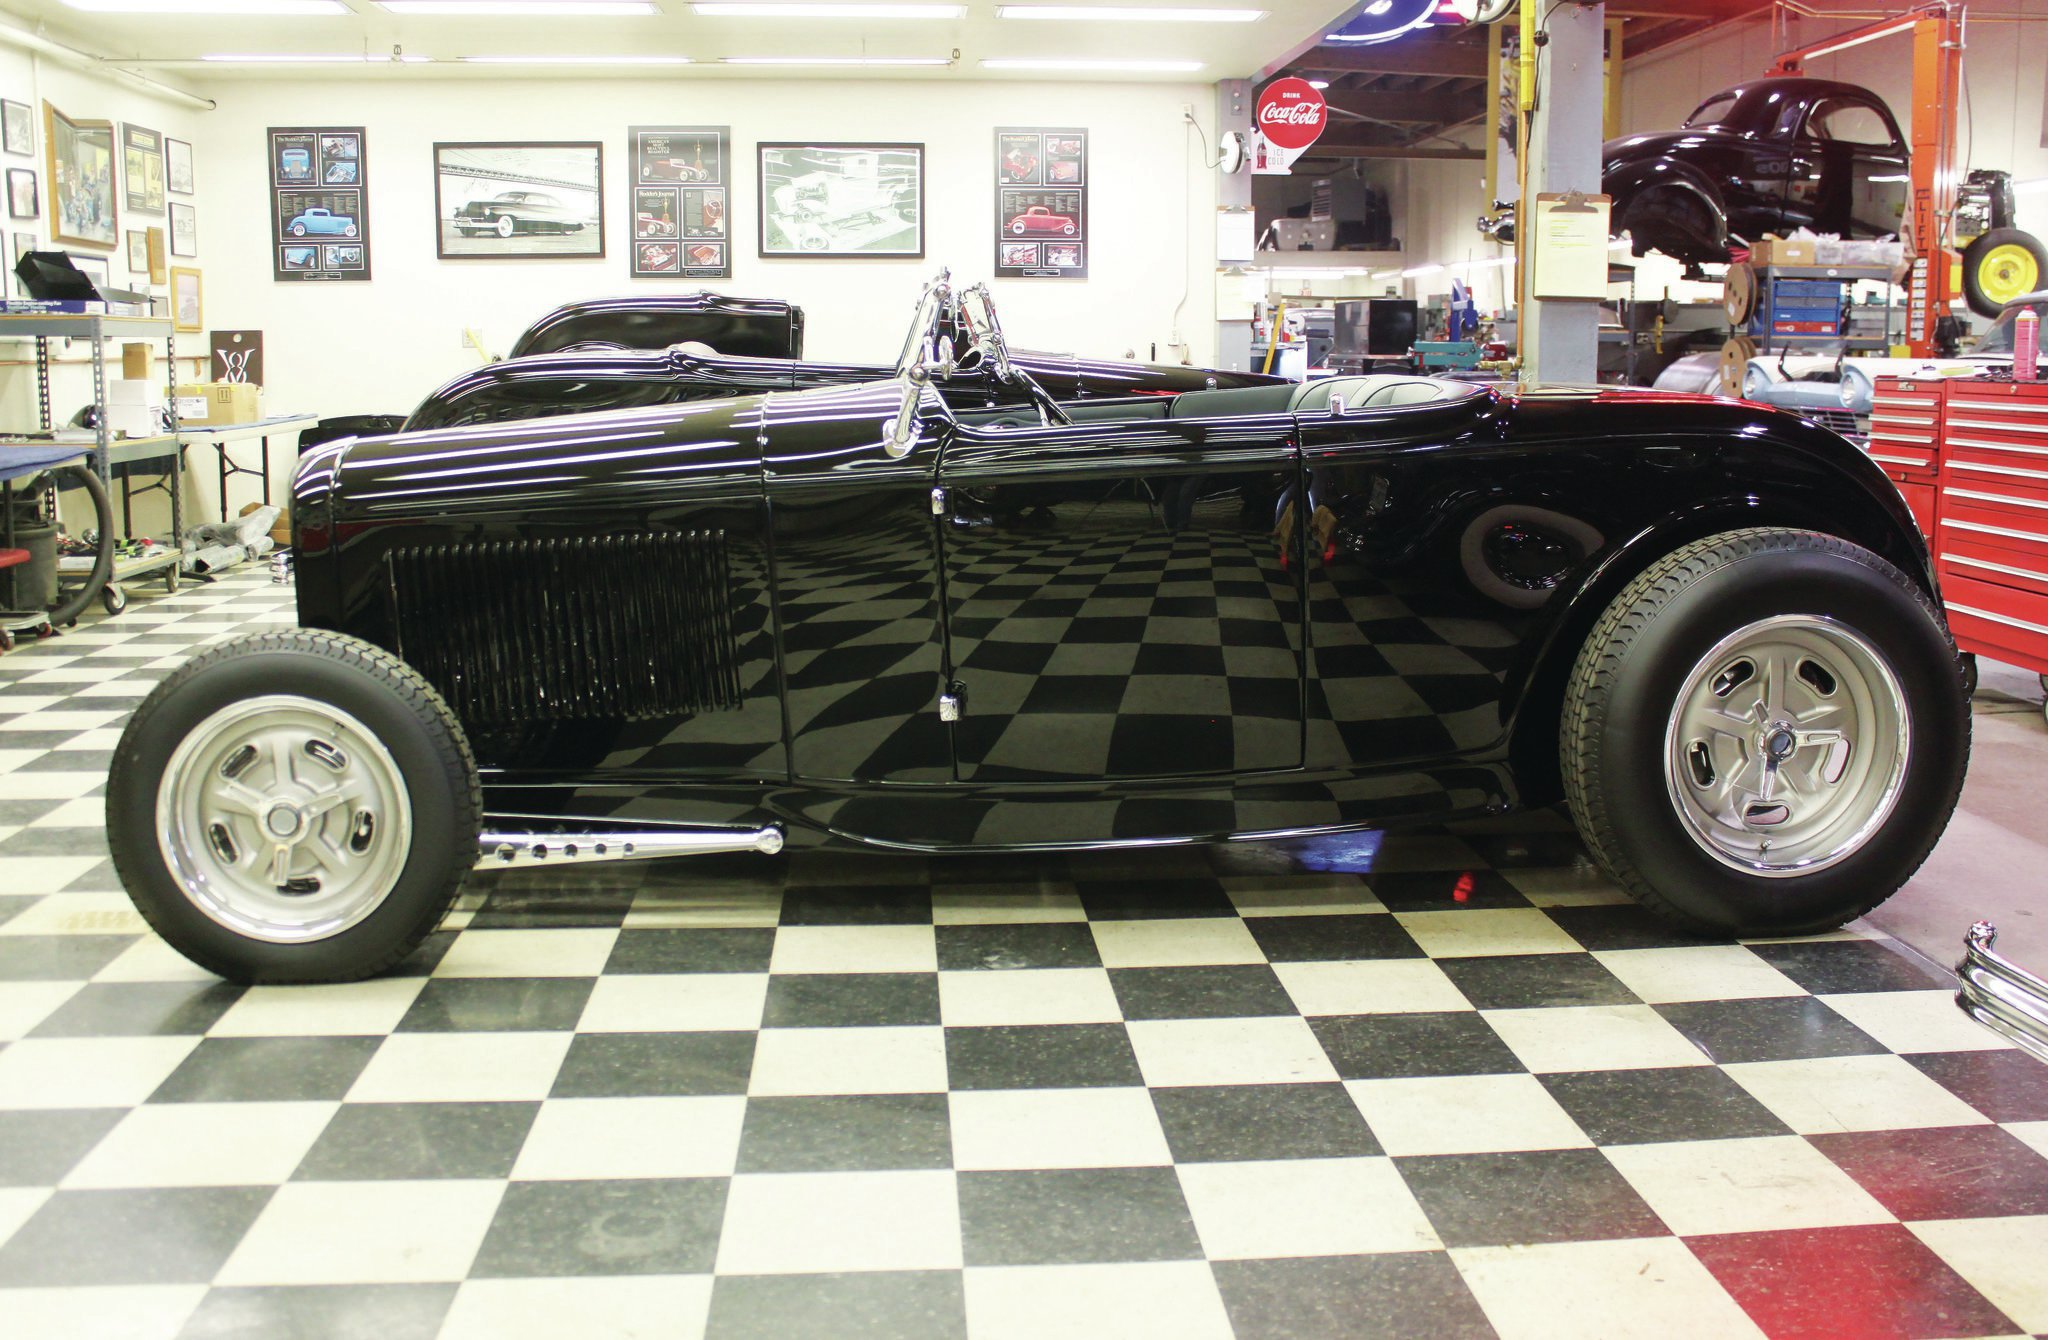 Dickie's Deuce roadster exhibits an unmistakable seduction and sophistication, without trying to be elegant or setting trends with goofy details, paint, or accessories. It's compelling for what it is and doesn't try to be something it's not—just like all hot rods should be.